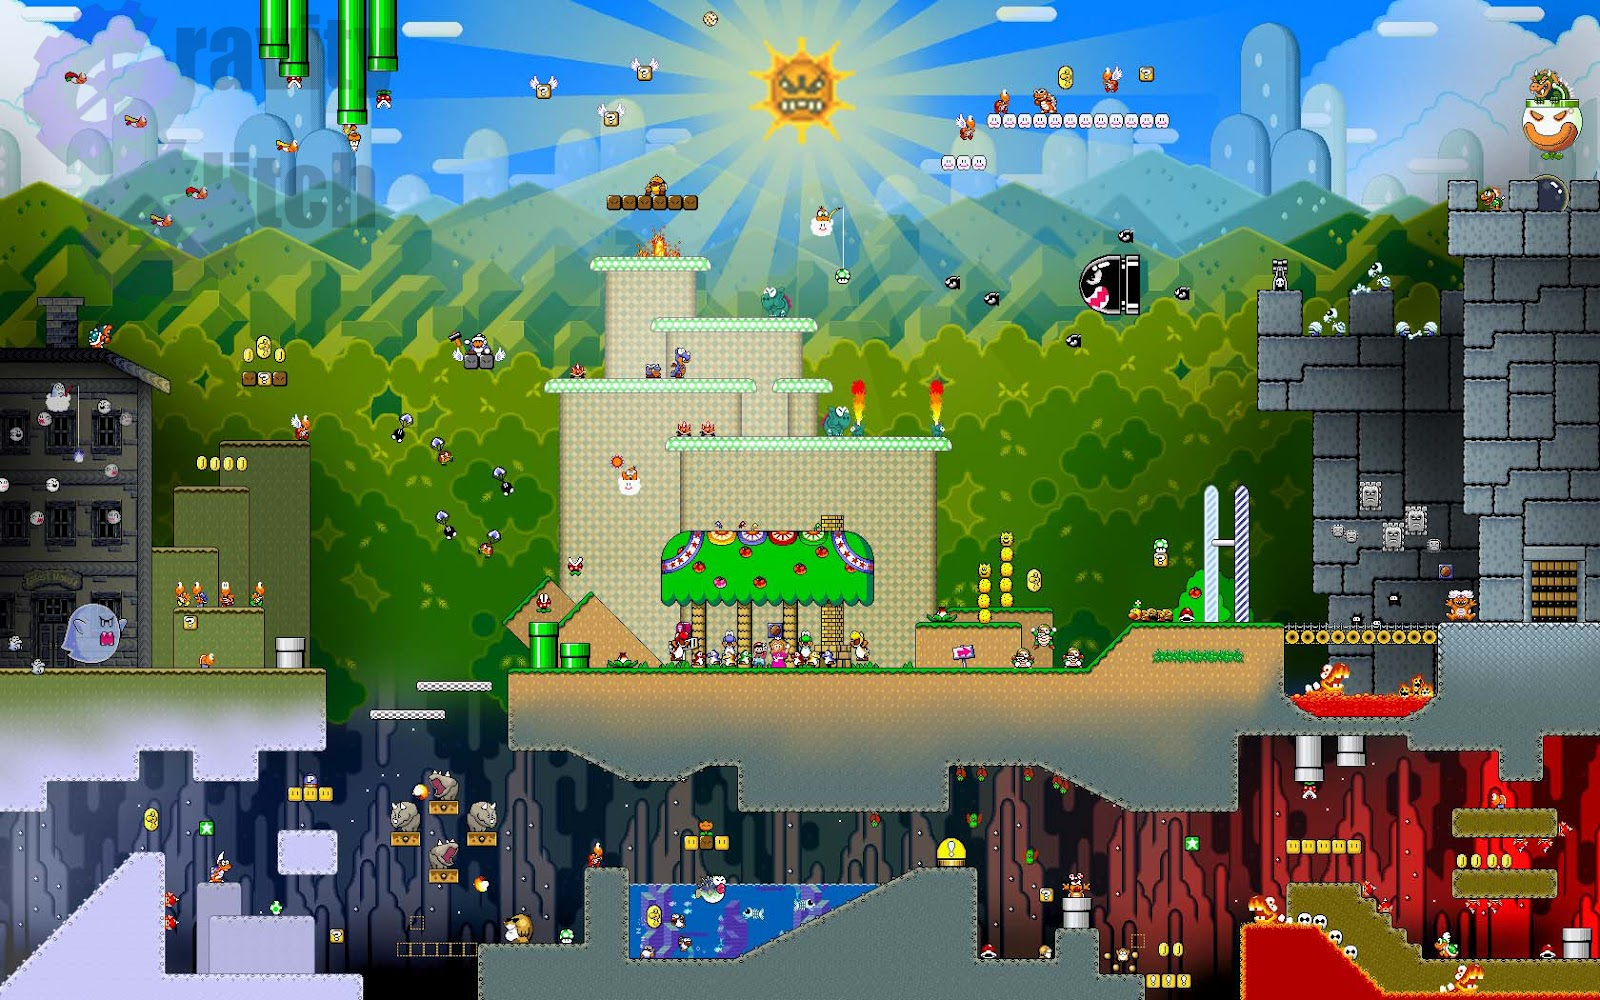 Video game gallery wallpaper avatars more super mario world map level classic wallpaper background super nintendo nes system img image picture pic gumiabroncs